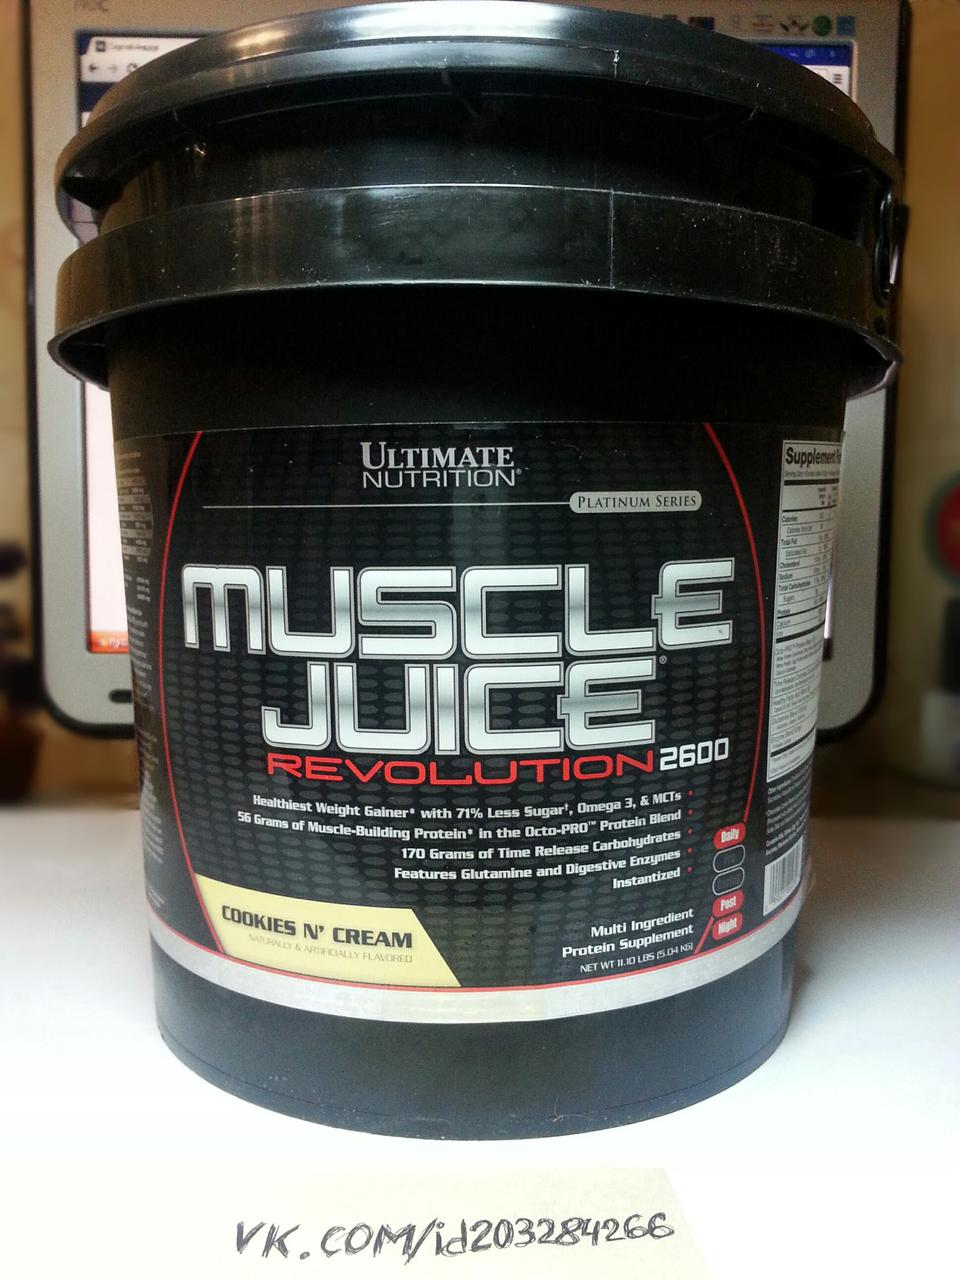 Ultimate Nutrition Muscle Juice 2600 Revolution 5.04кг